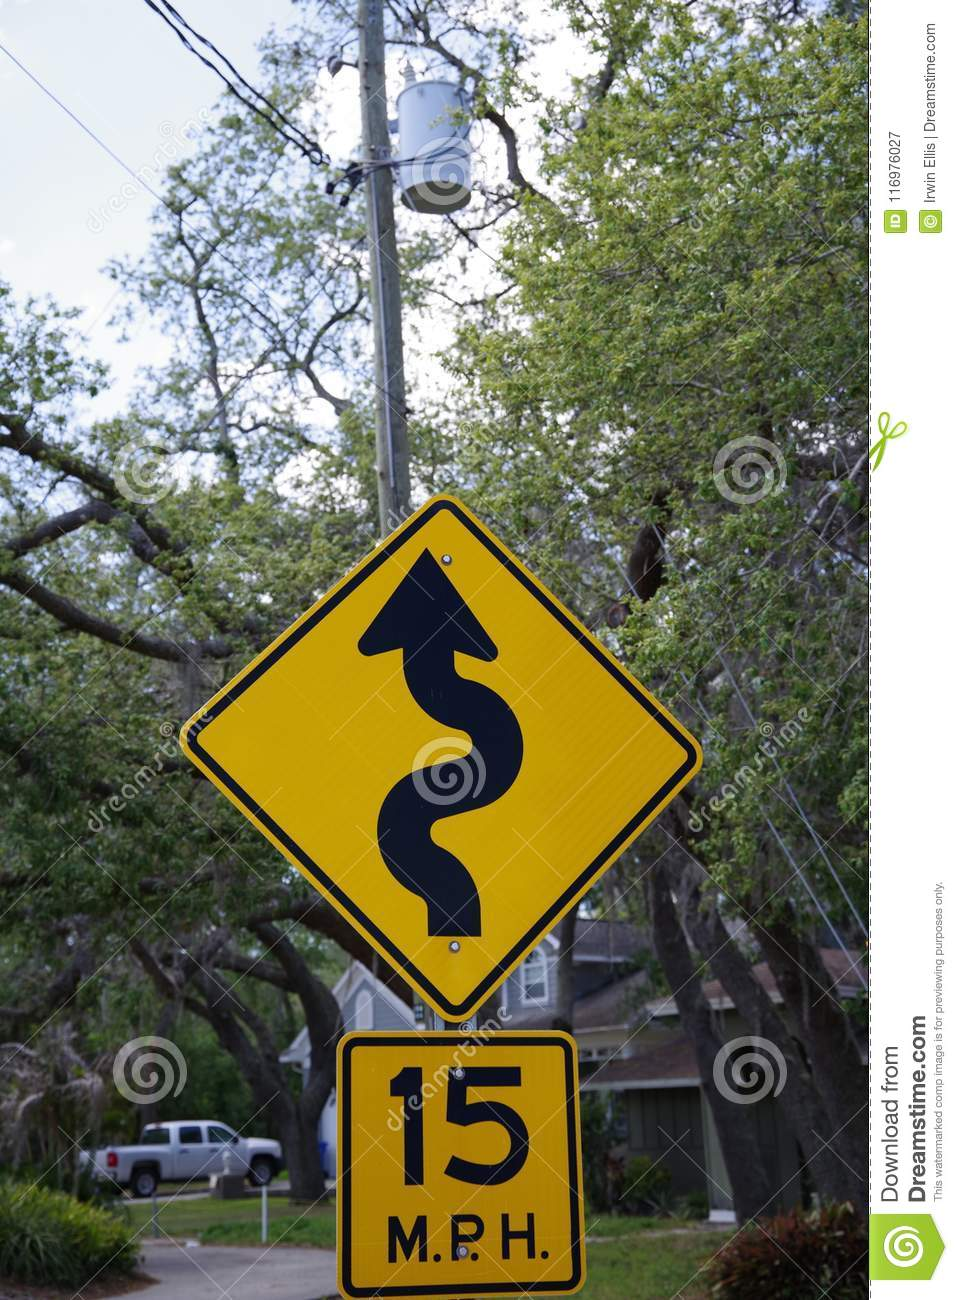 Tampa, Florida / USA - May 5 2018: 15 MPH low angle street sign with the symbol of a squiggly line